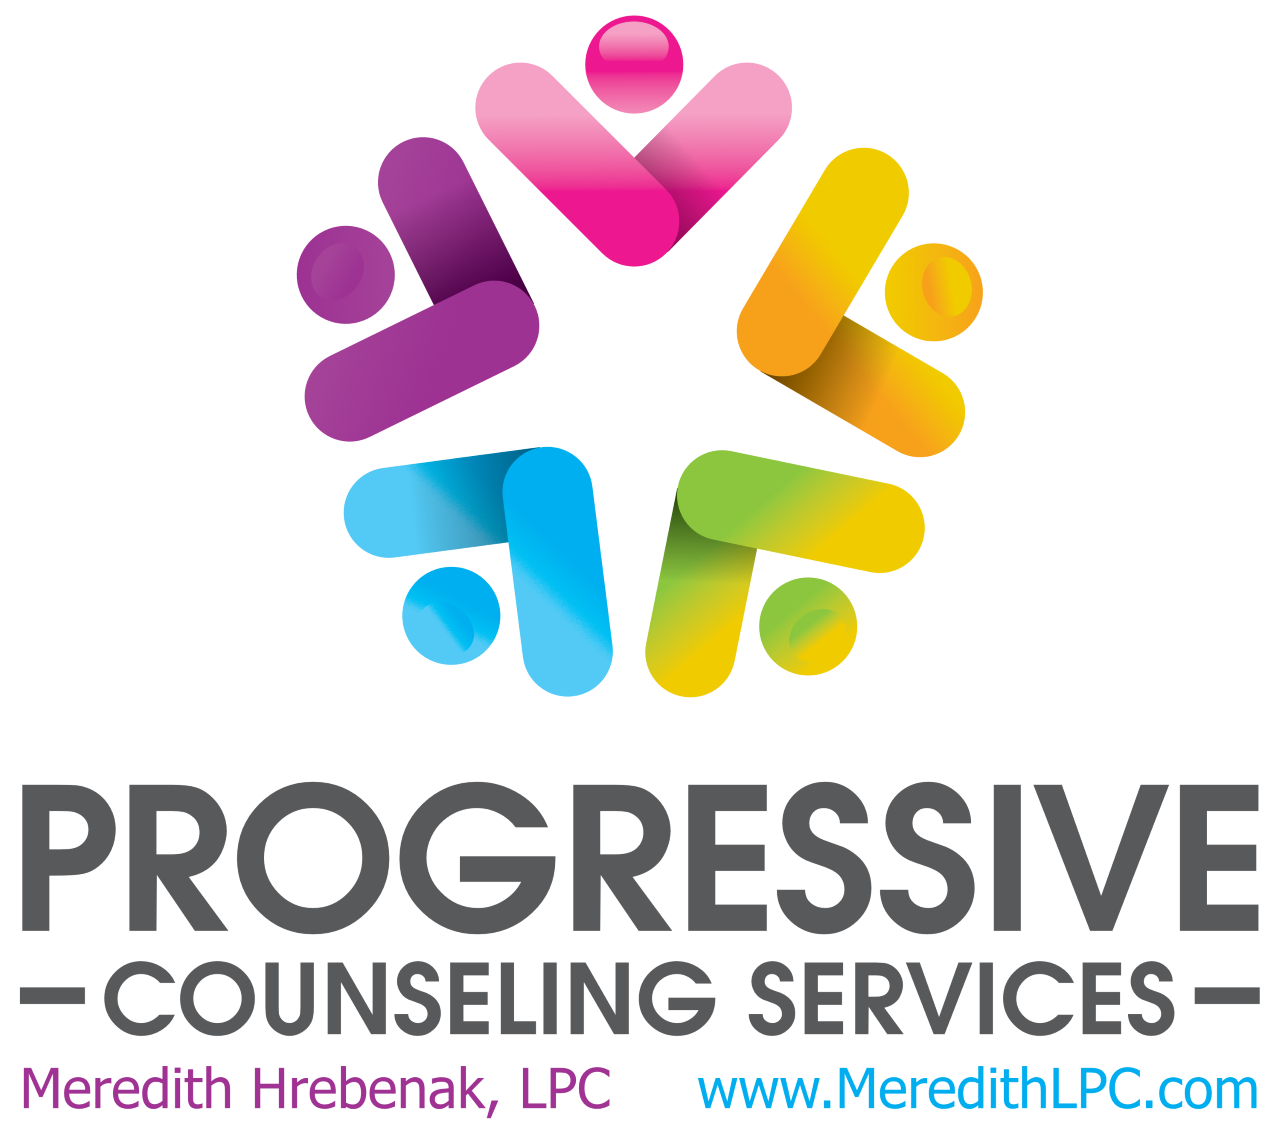 Progressive Counseling Services